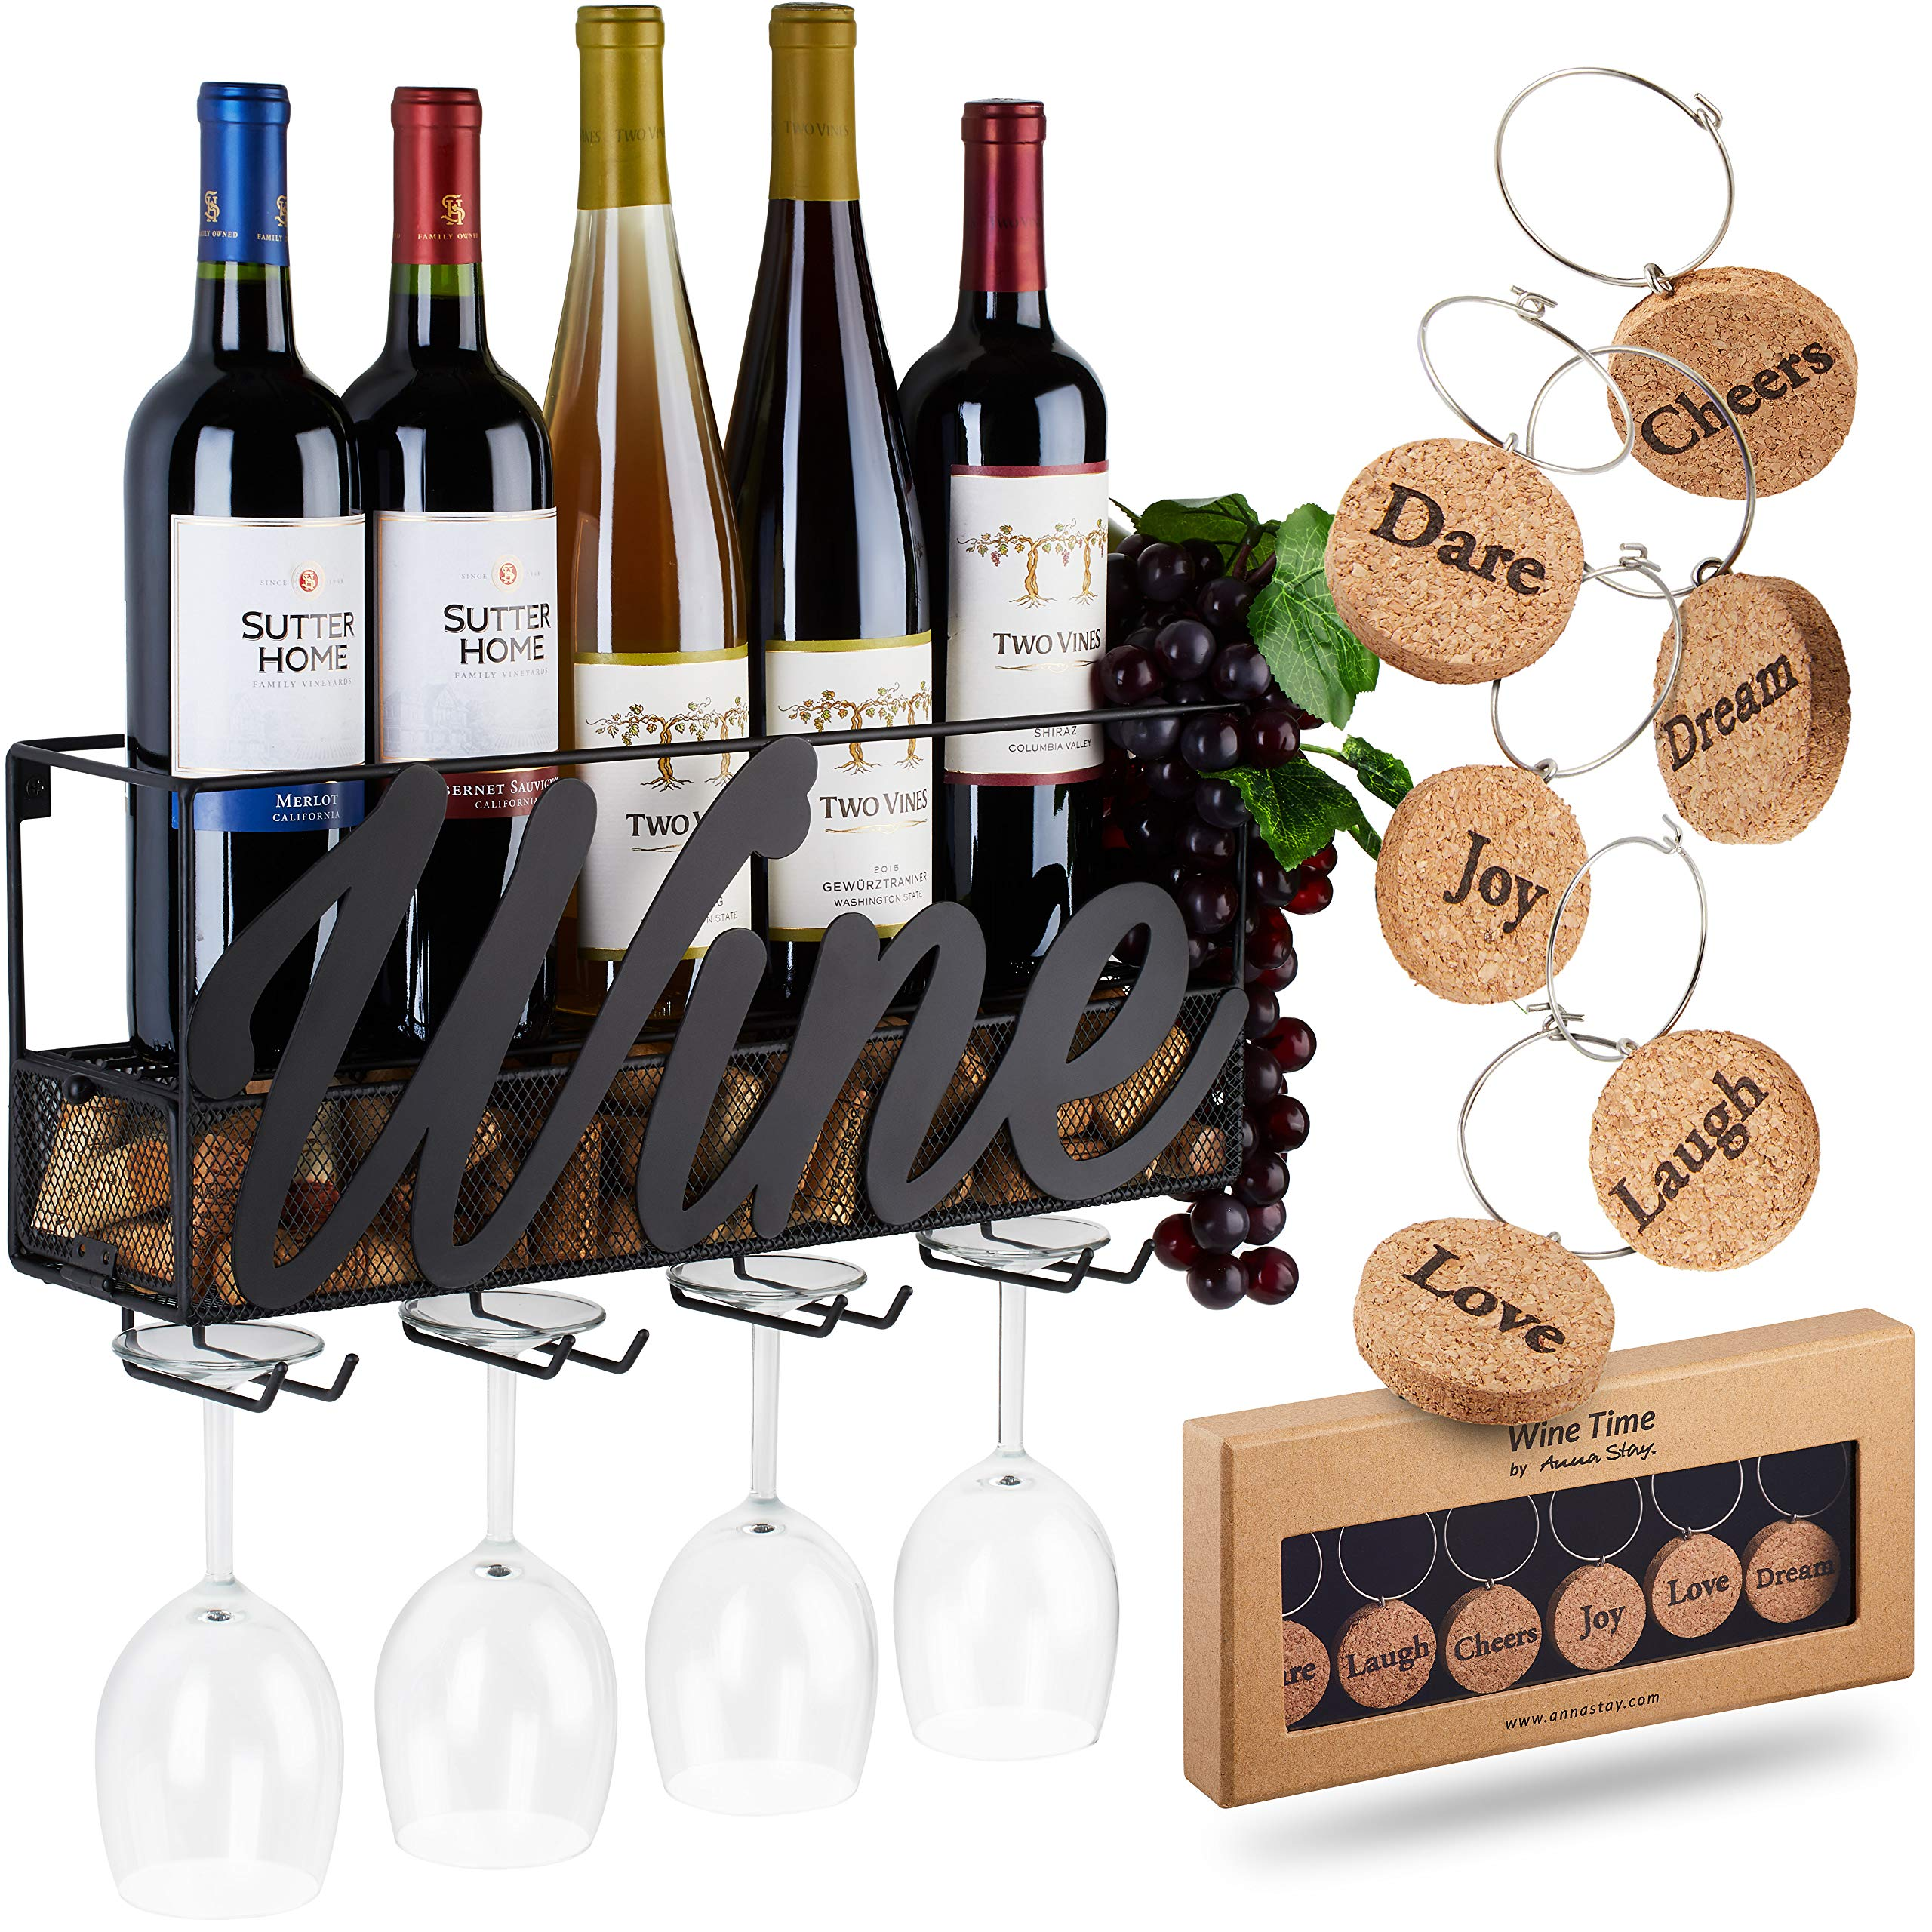 Wall Mounted Wine Rack - Bottle & Glass Holder - Cork Storage - Store Red, White, Champagne - Comes with 6 Cork Wine Charms - Home & Kitchen Décor - Designed by Anna Stay, Wine by TRIVETRUNNER -ANNA STAY